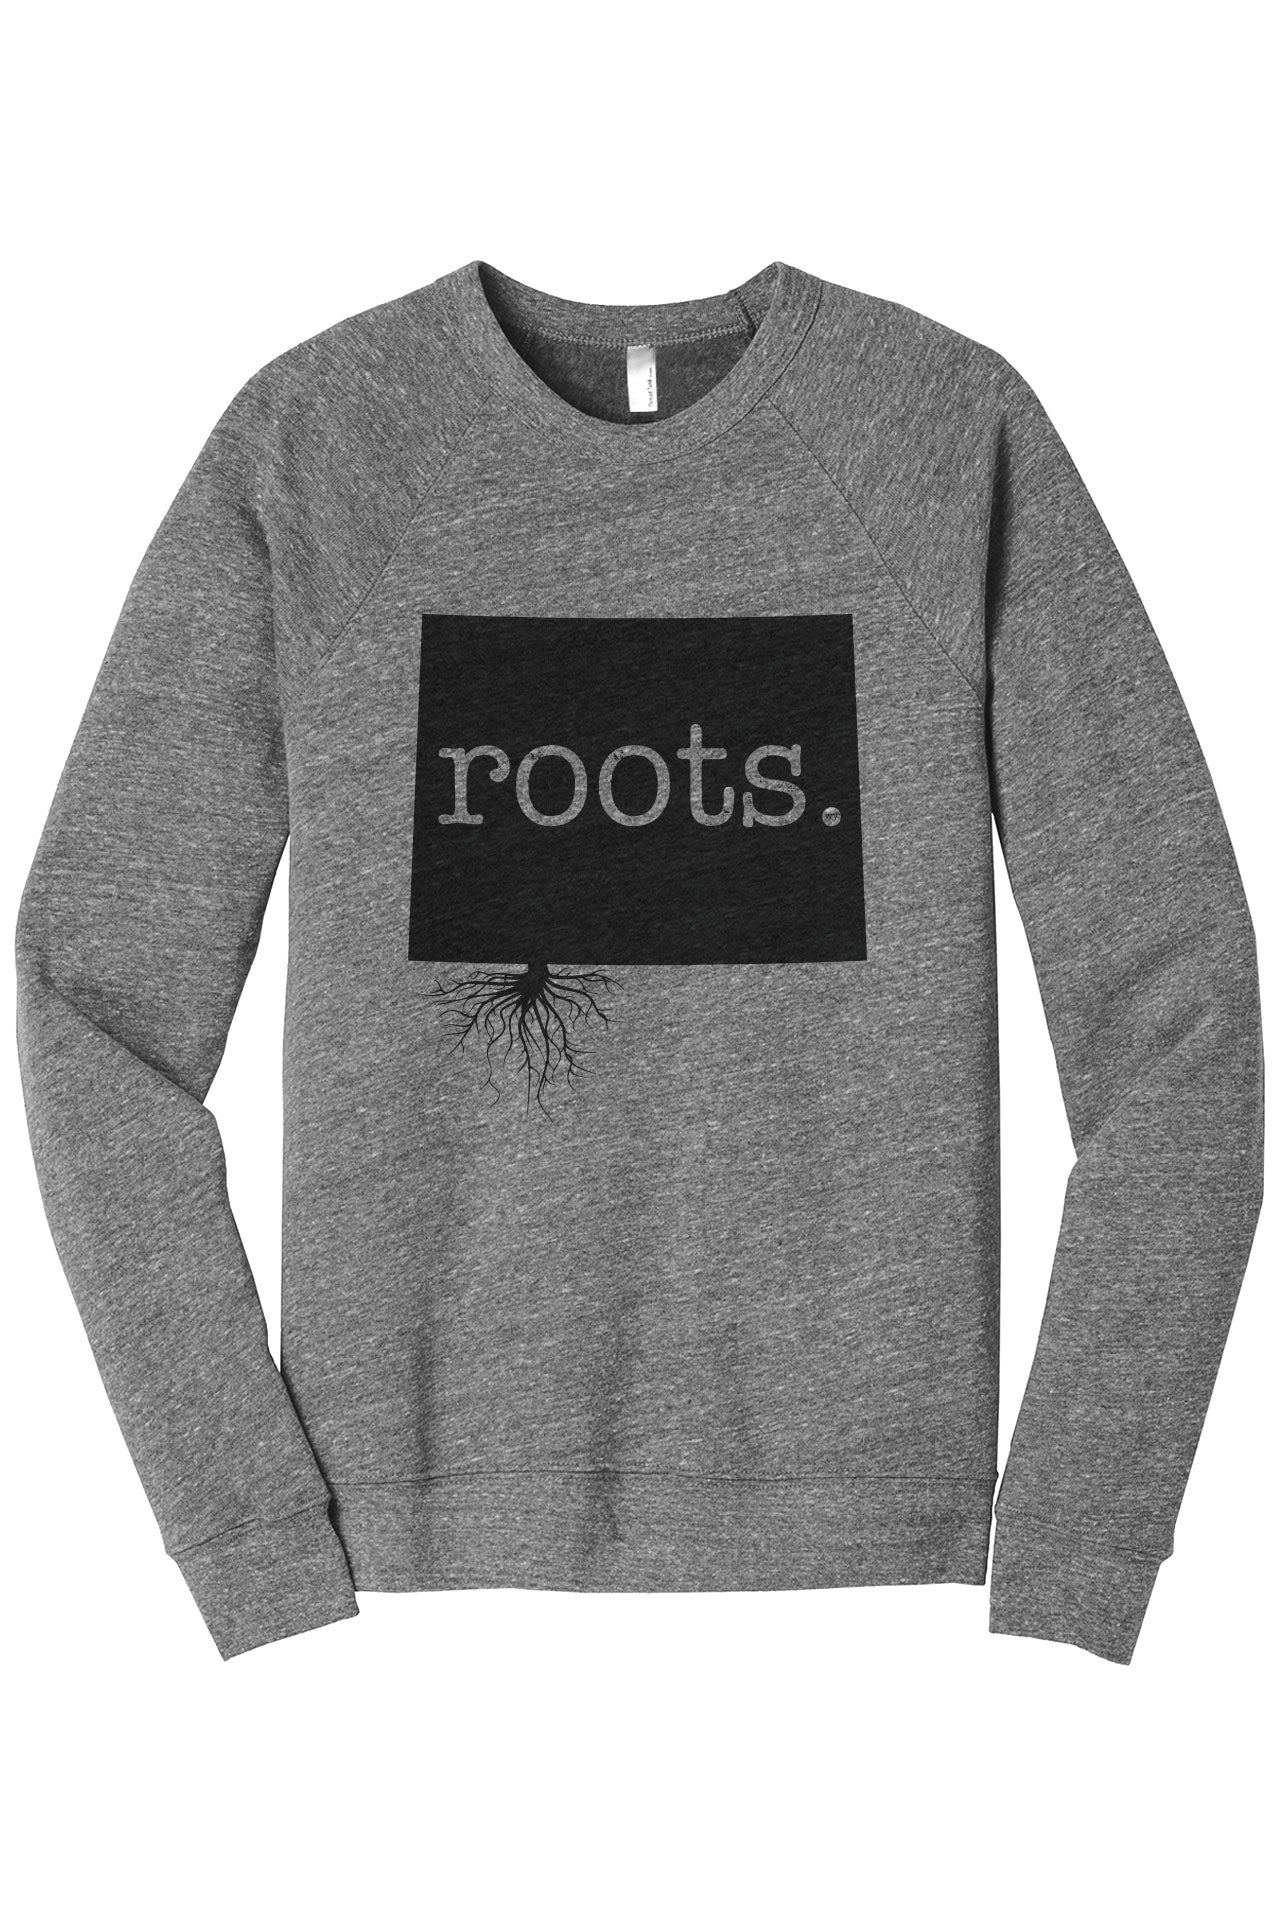 Home Roots State Wyoming WY Cozy Unisex Fleece Longsleeves Sweater Heather Grey FRONT